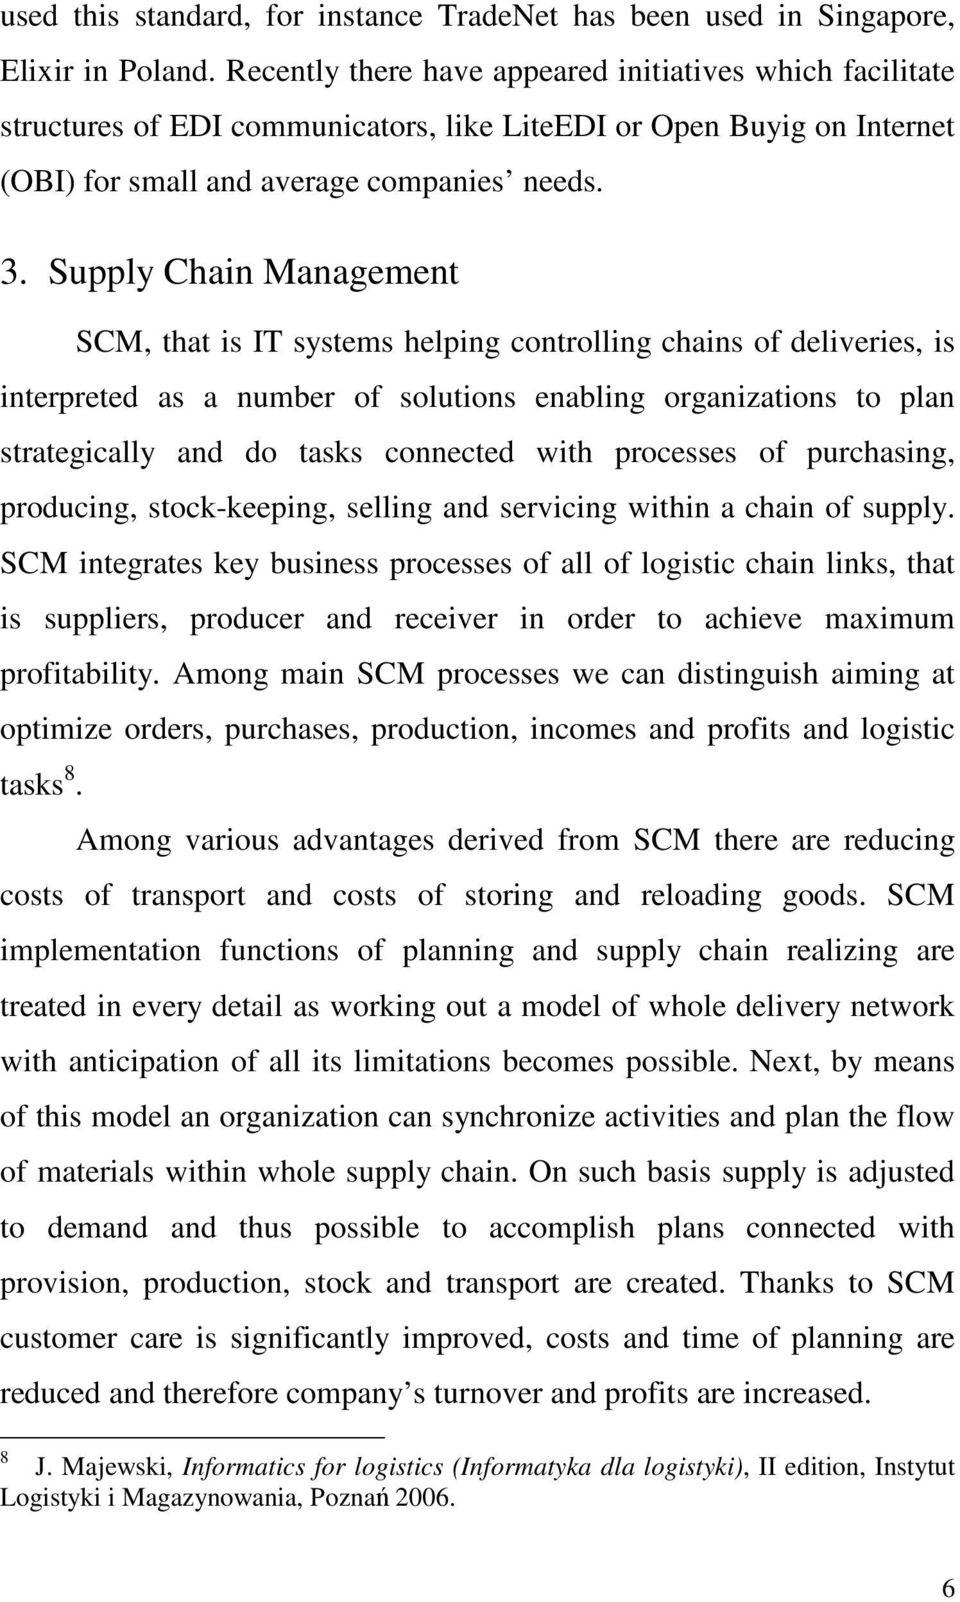 Supply Chain Management SCM, that is IT systems helping controlling chains of deliveries, is interpreted as a number of solutions enabling organizations to plan strategically and do tasks connected